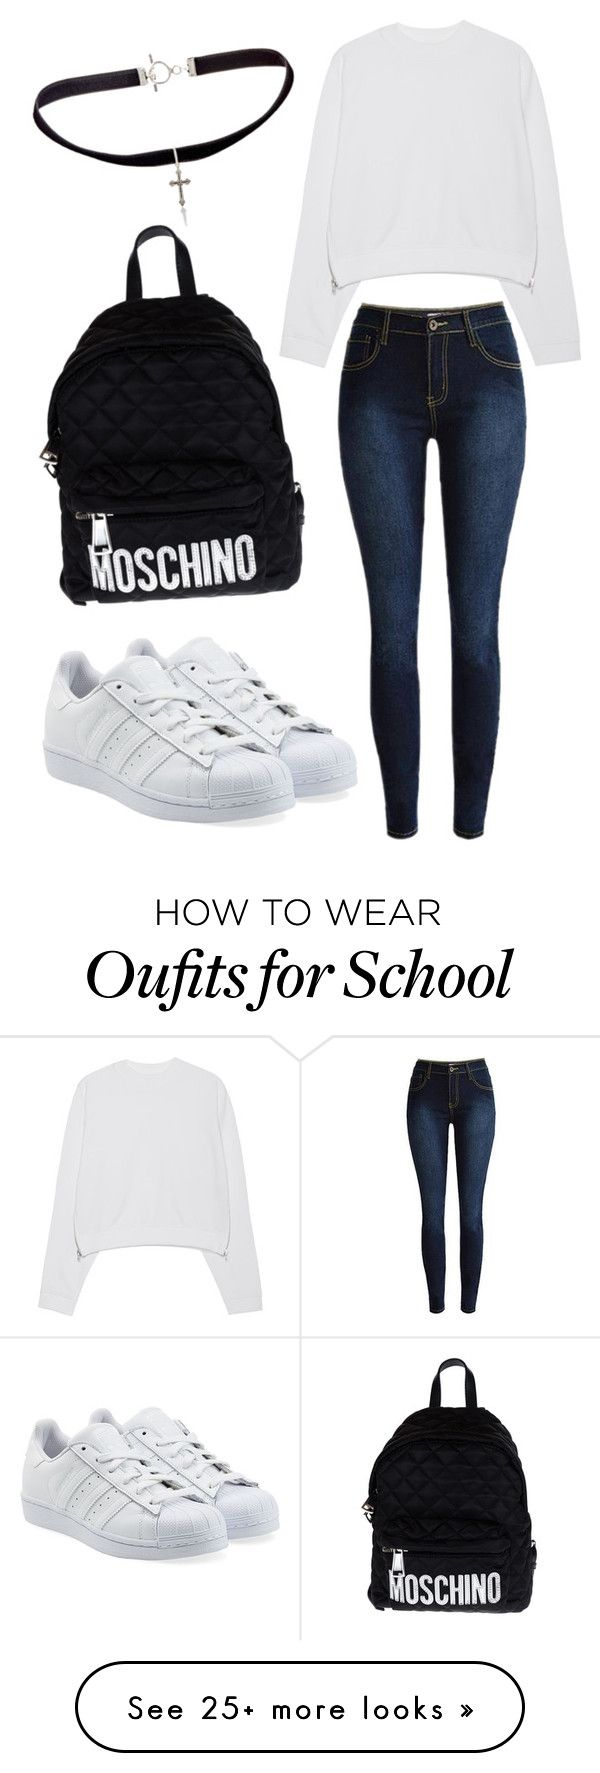 """School"" by musicmelody1 on Polyvore featuring Acne Studios, adidas Originals, Yves Saint Laurent and Moschino"